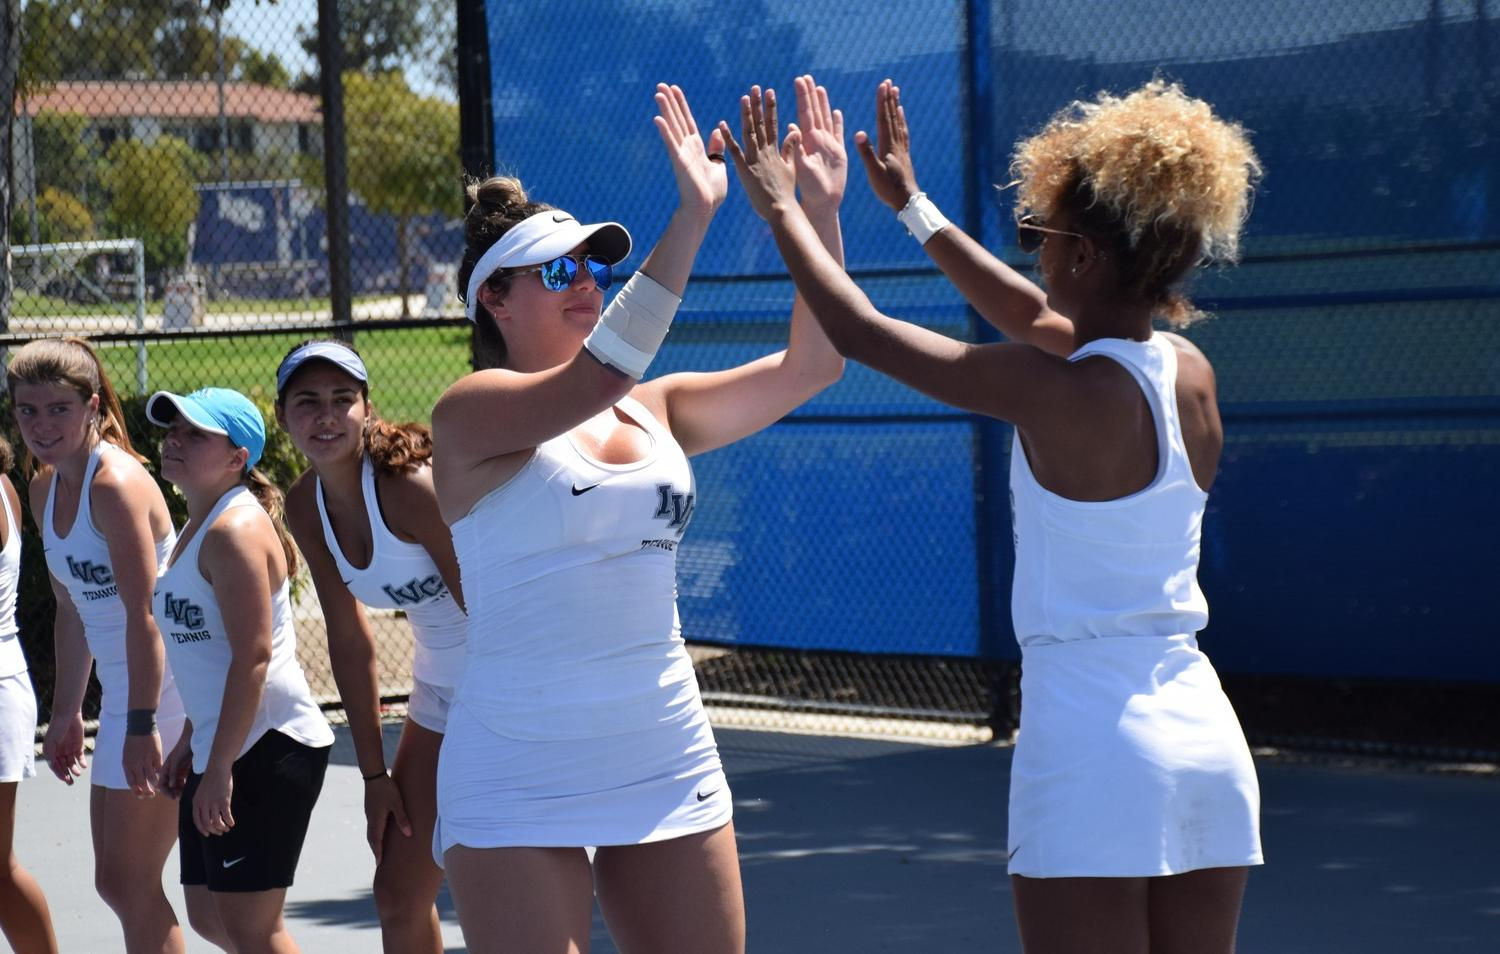 Women's tennis team beats Santa Barbara City to start playoffs